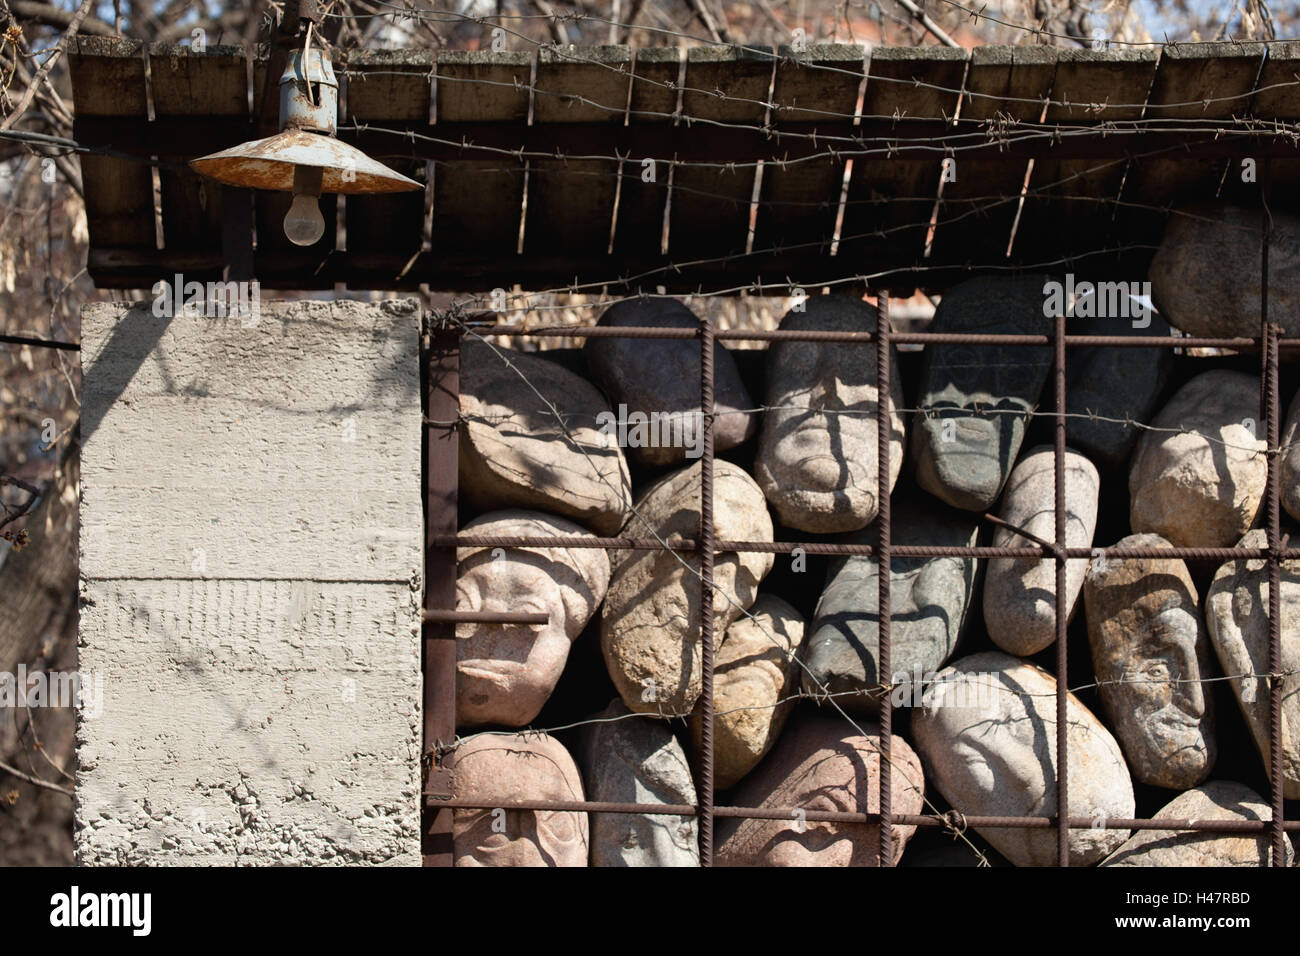 Moscow, sculpture park, memorial for the victims of the Stalinism, - Stock Image